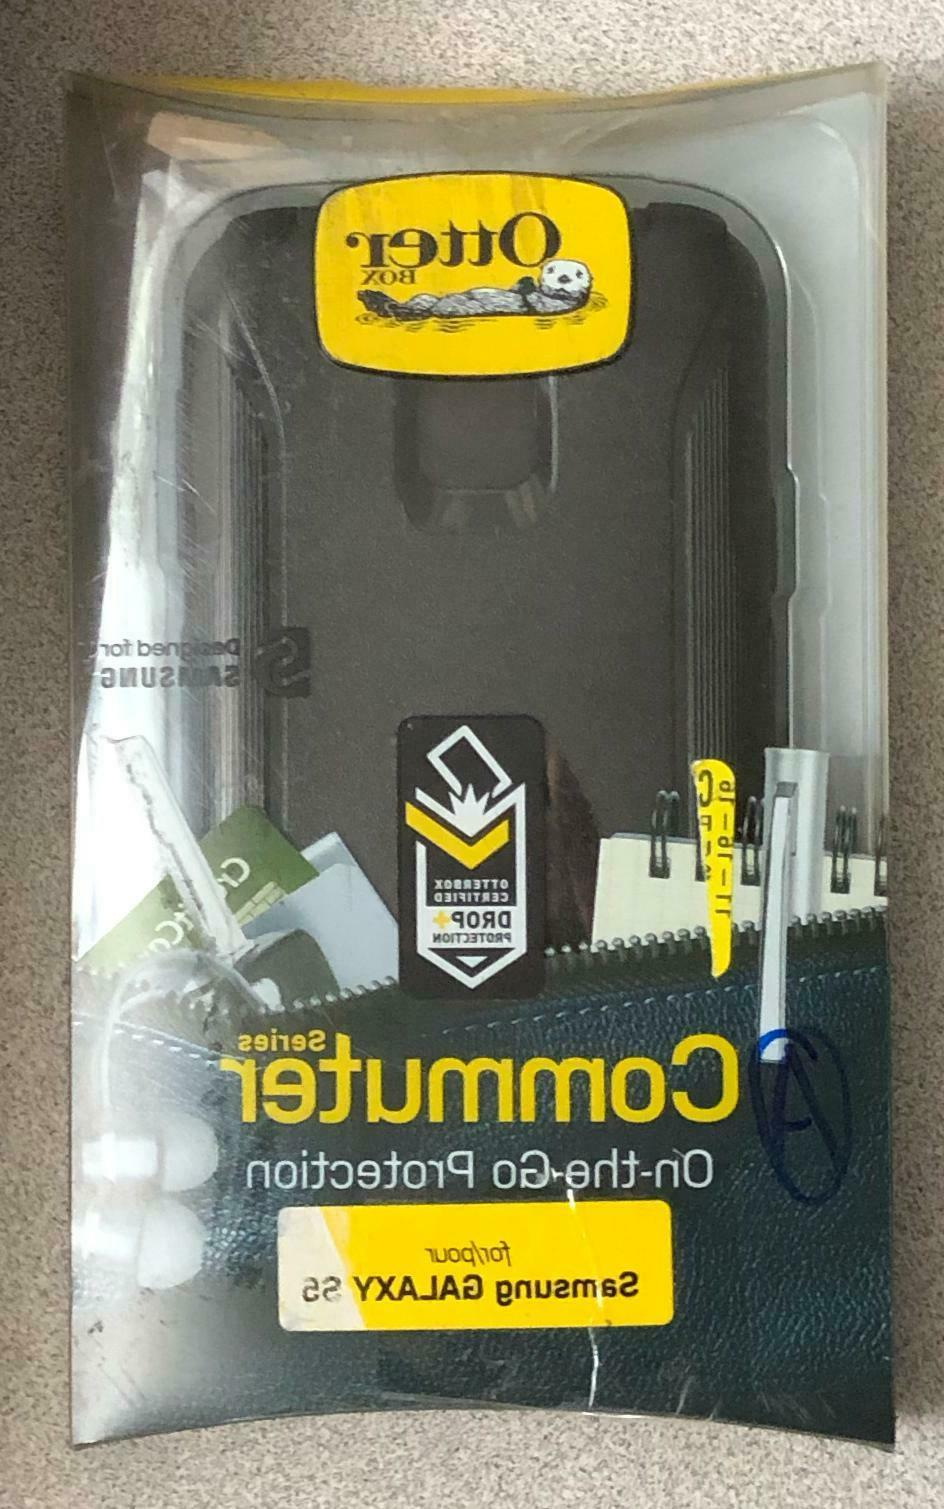 Otterbox  Samsung Galaxy S5 Case - Retail Packaging Protecti